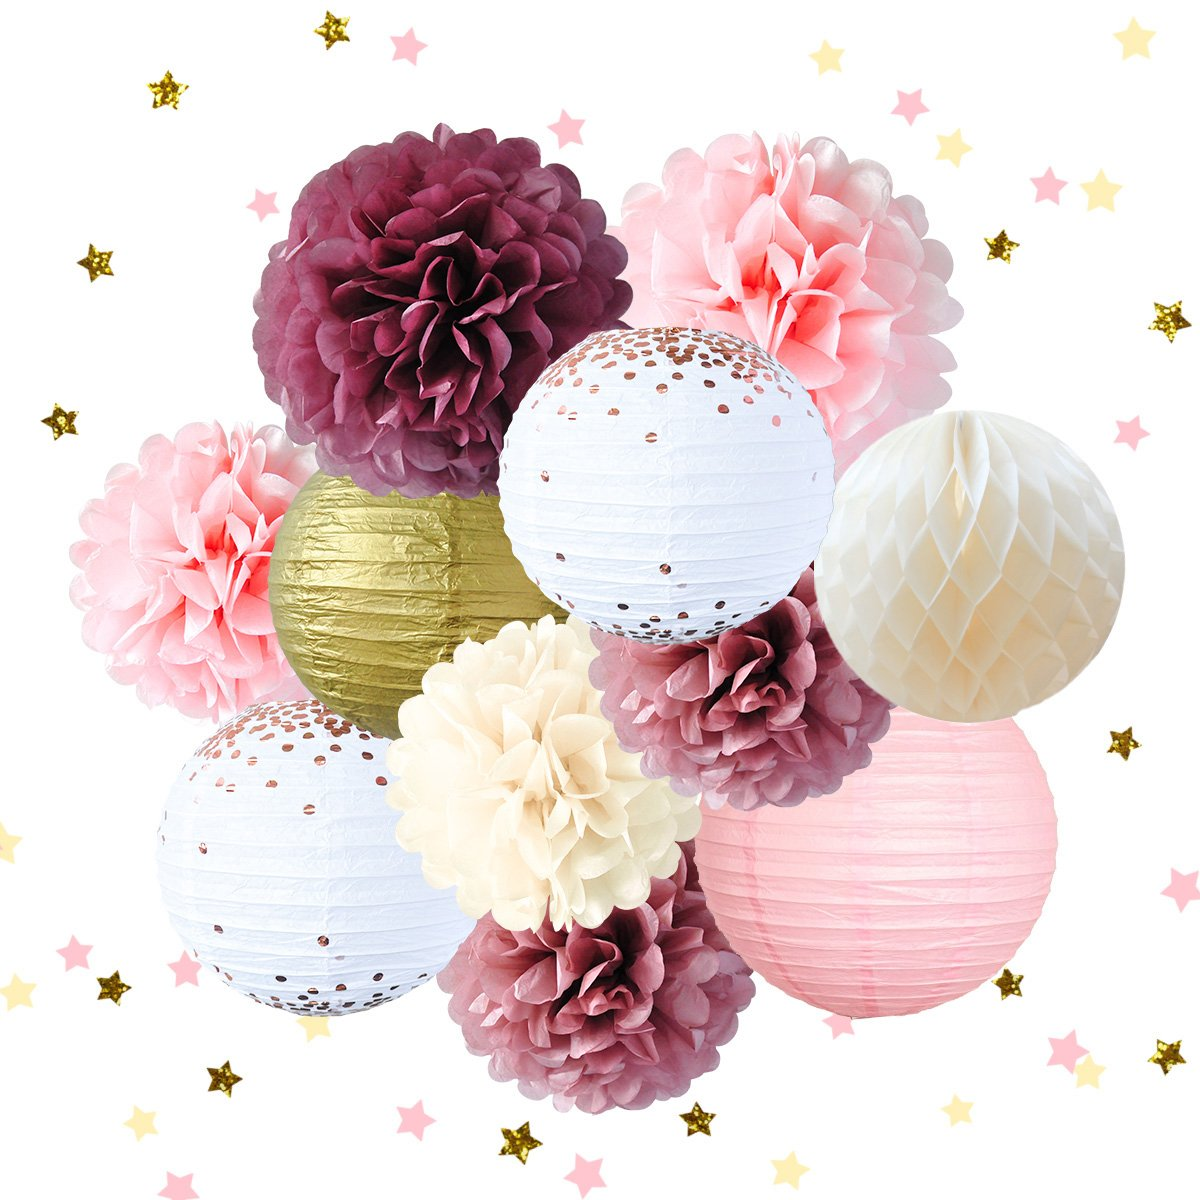 Nicrolandee Dusty Rose Blush Pink Tissue Pom Poms Rose Gold Foil Dots Paper Lanterns Gold Glitter Party Confetti 50G for Wedding Nursery Bridal Shower Baby Shower Birthday Party Decorations 4336867404